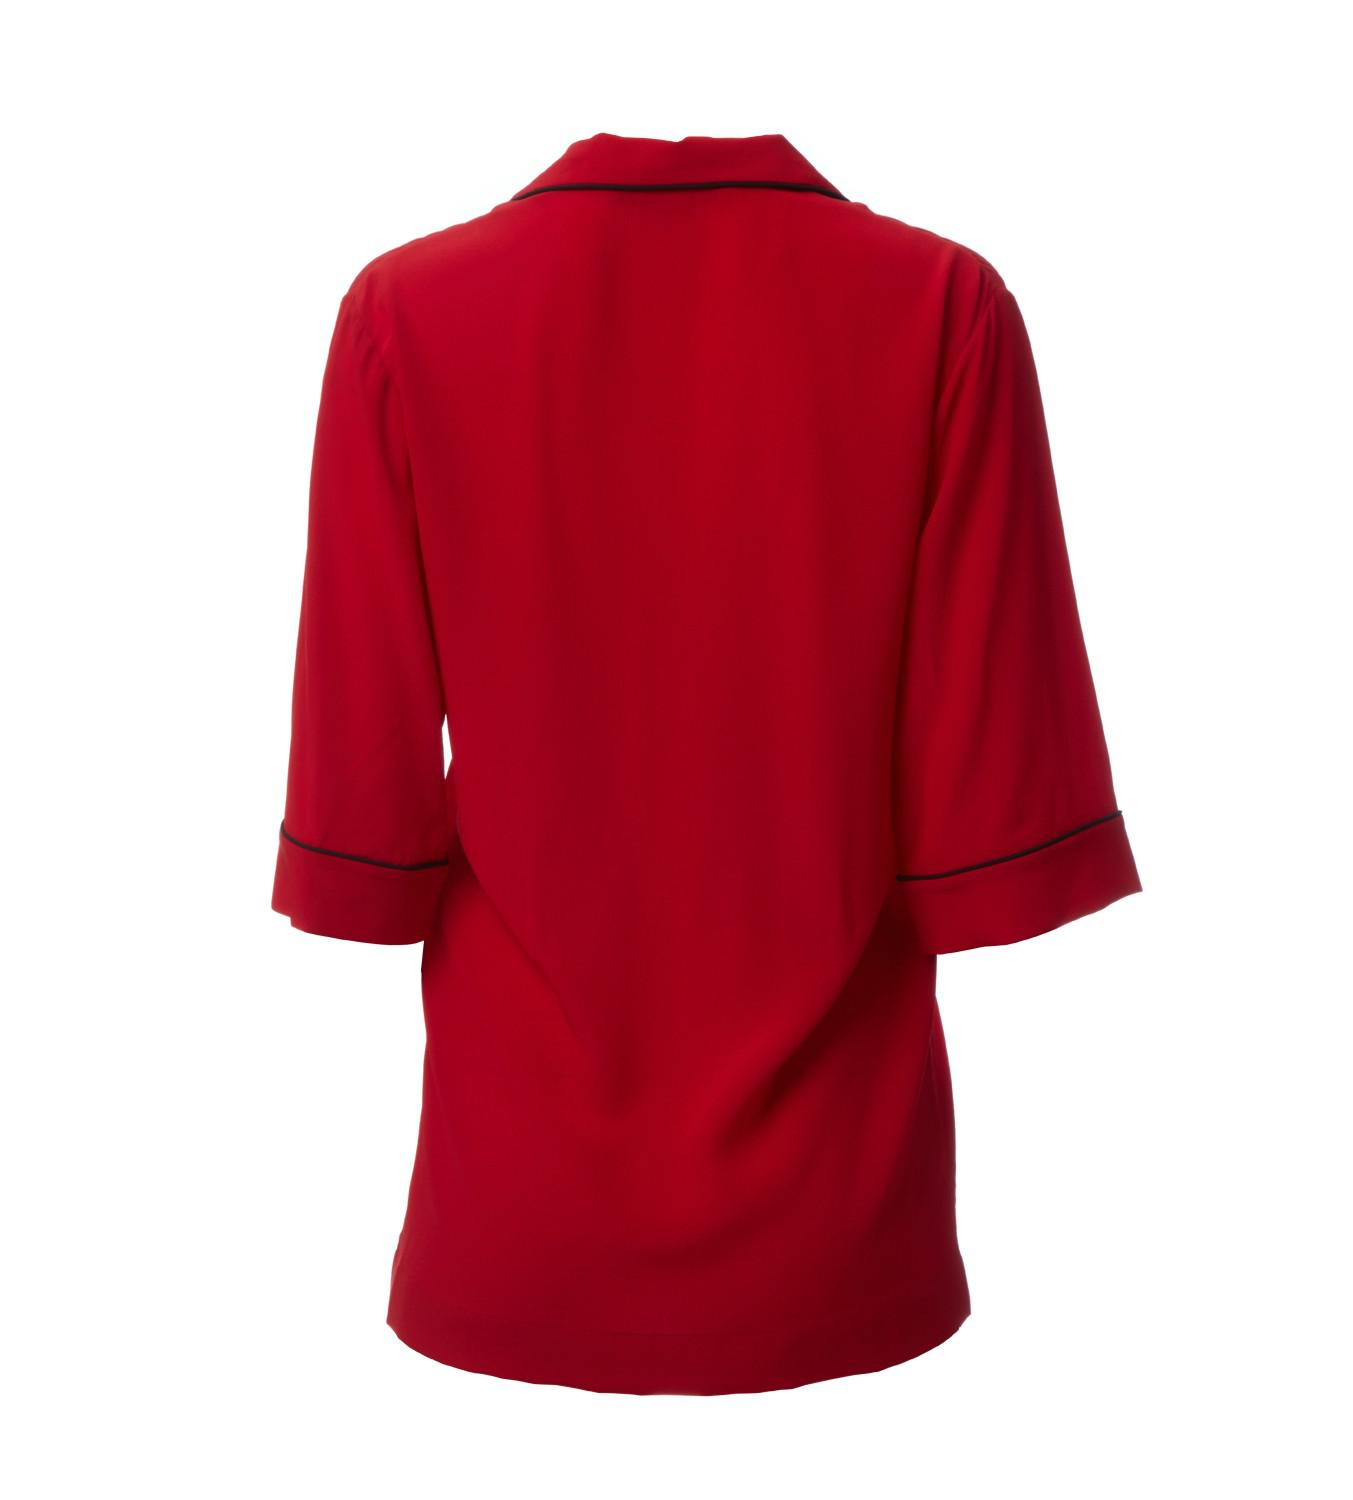 b5c7dc47d4bd3 Lyst - Stella McCartney Helena Red Silk Shirt in Red